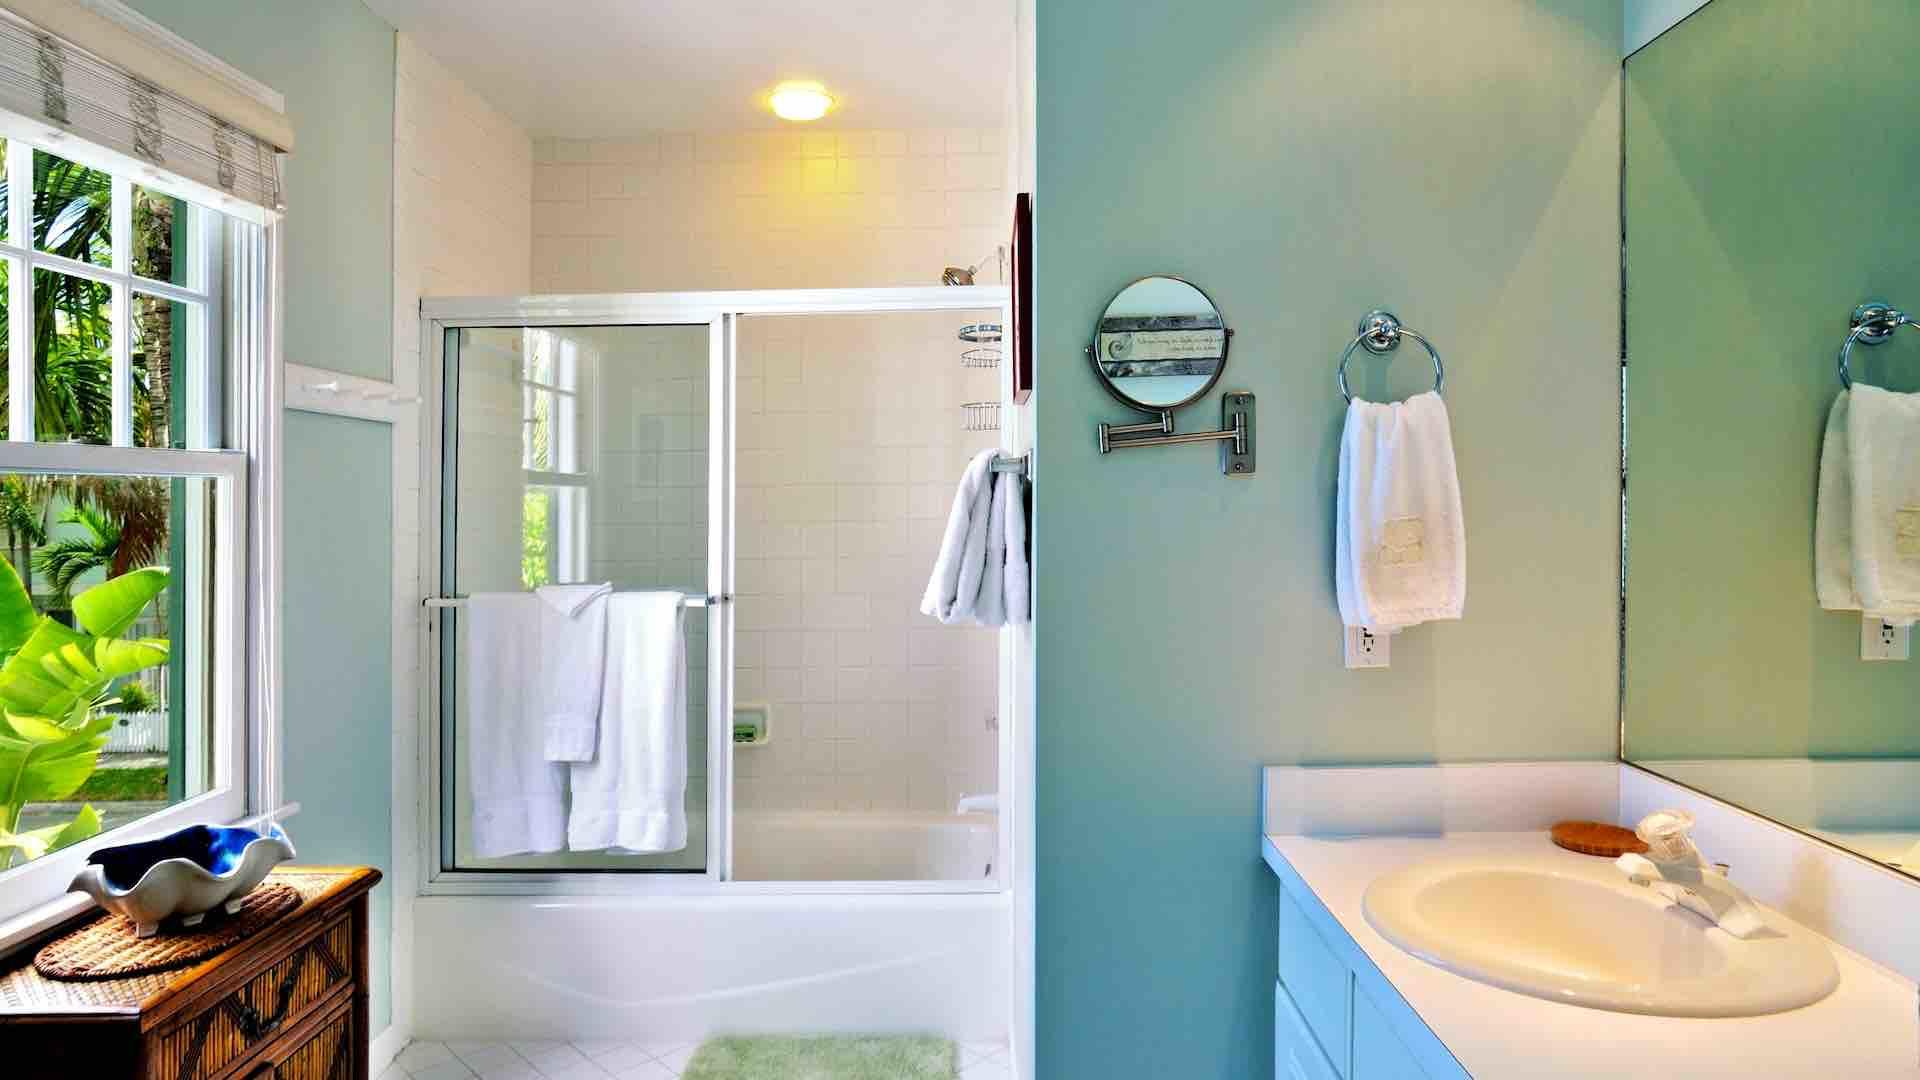 The master bathroom is en suite, with a tub and shower combination...